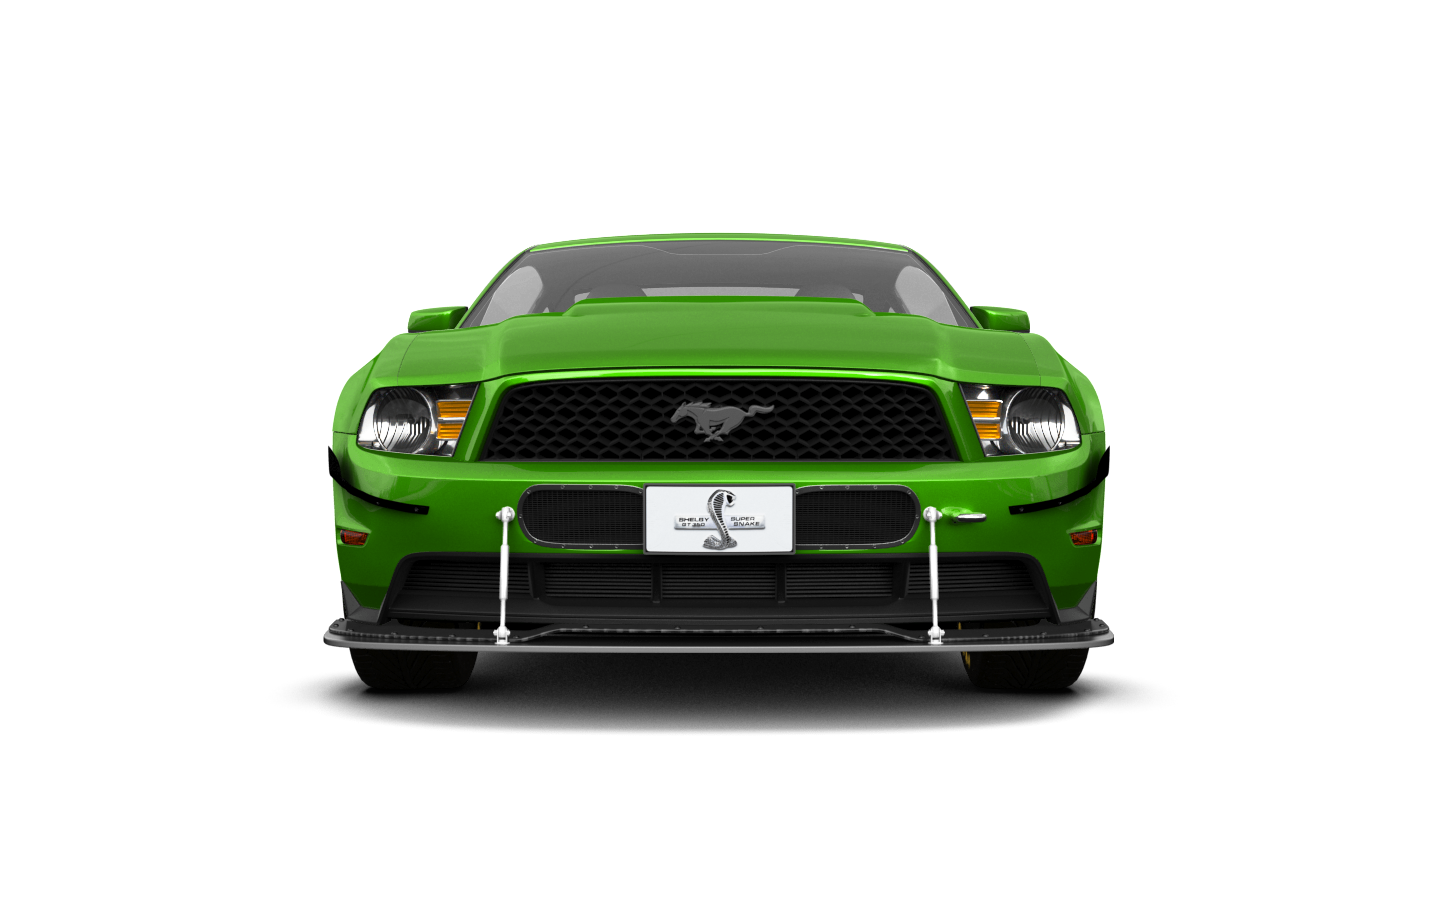 Ford Mustang 2 Door Coupe 2012